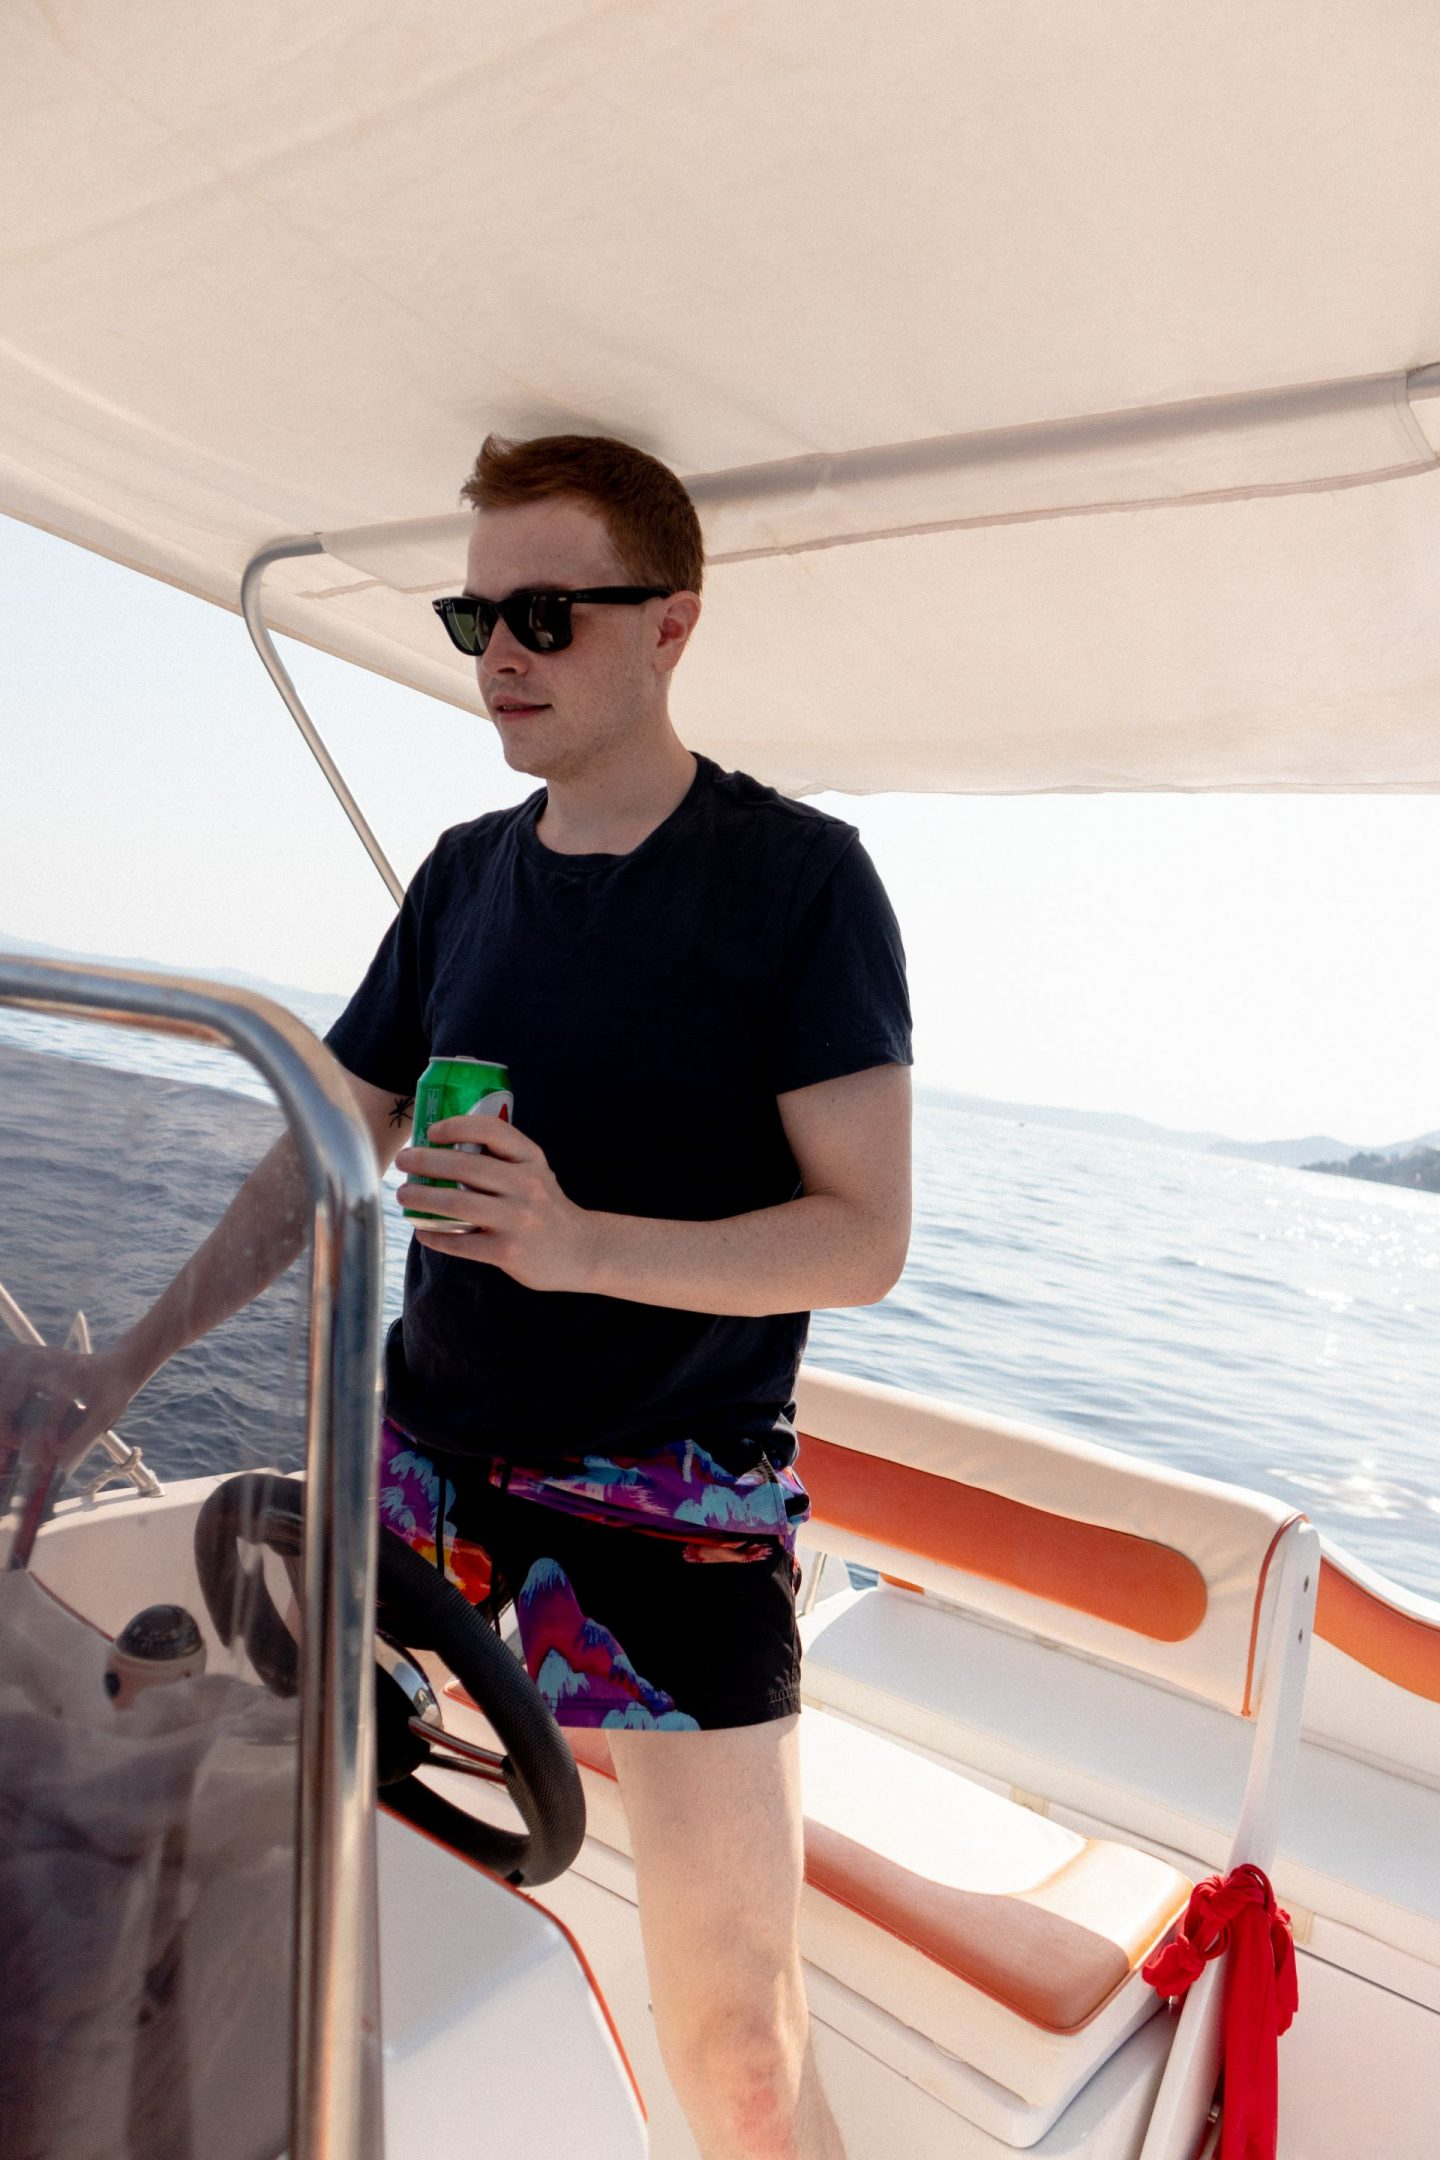 Simon is driving a boat in Corfu, Greece